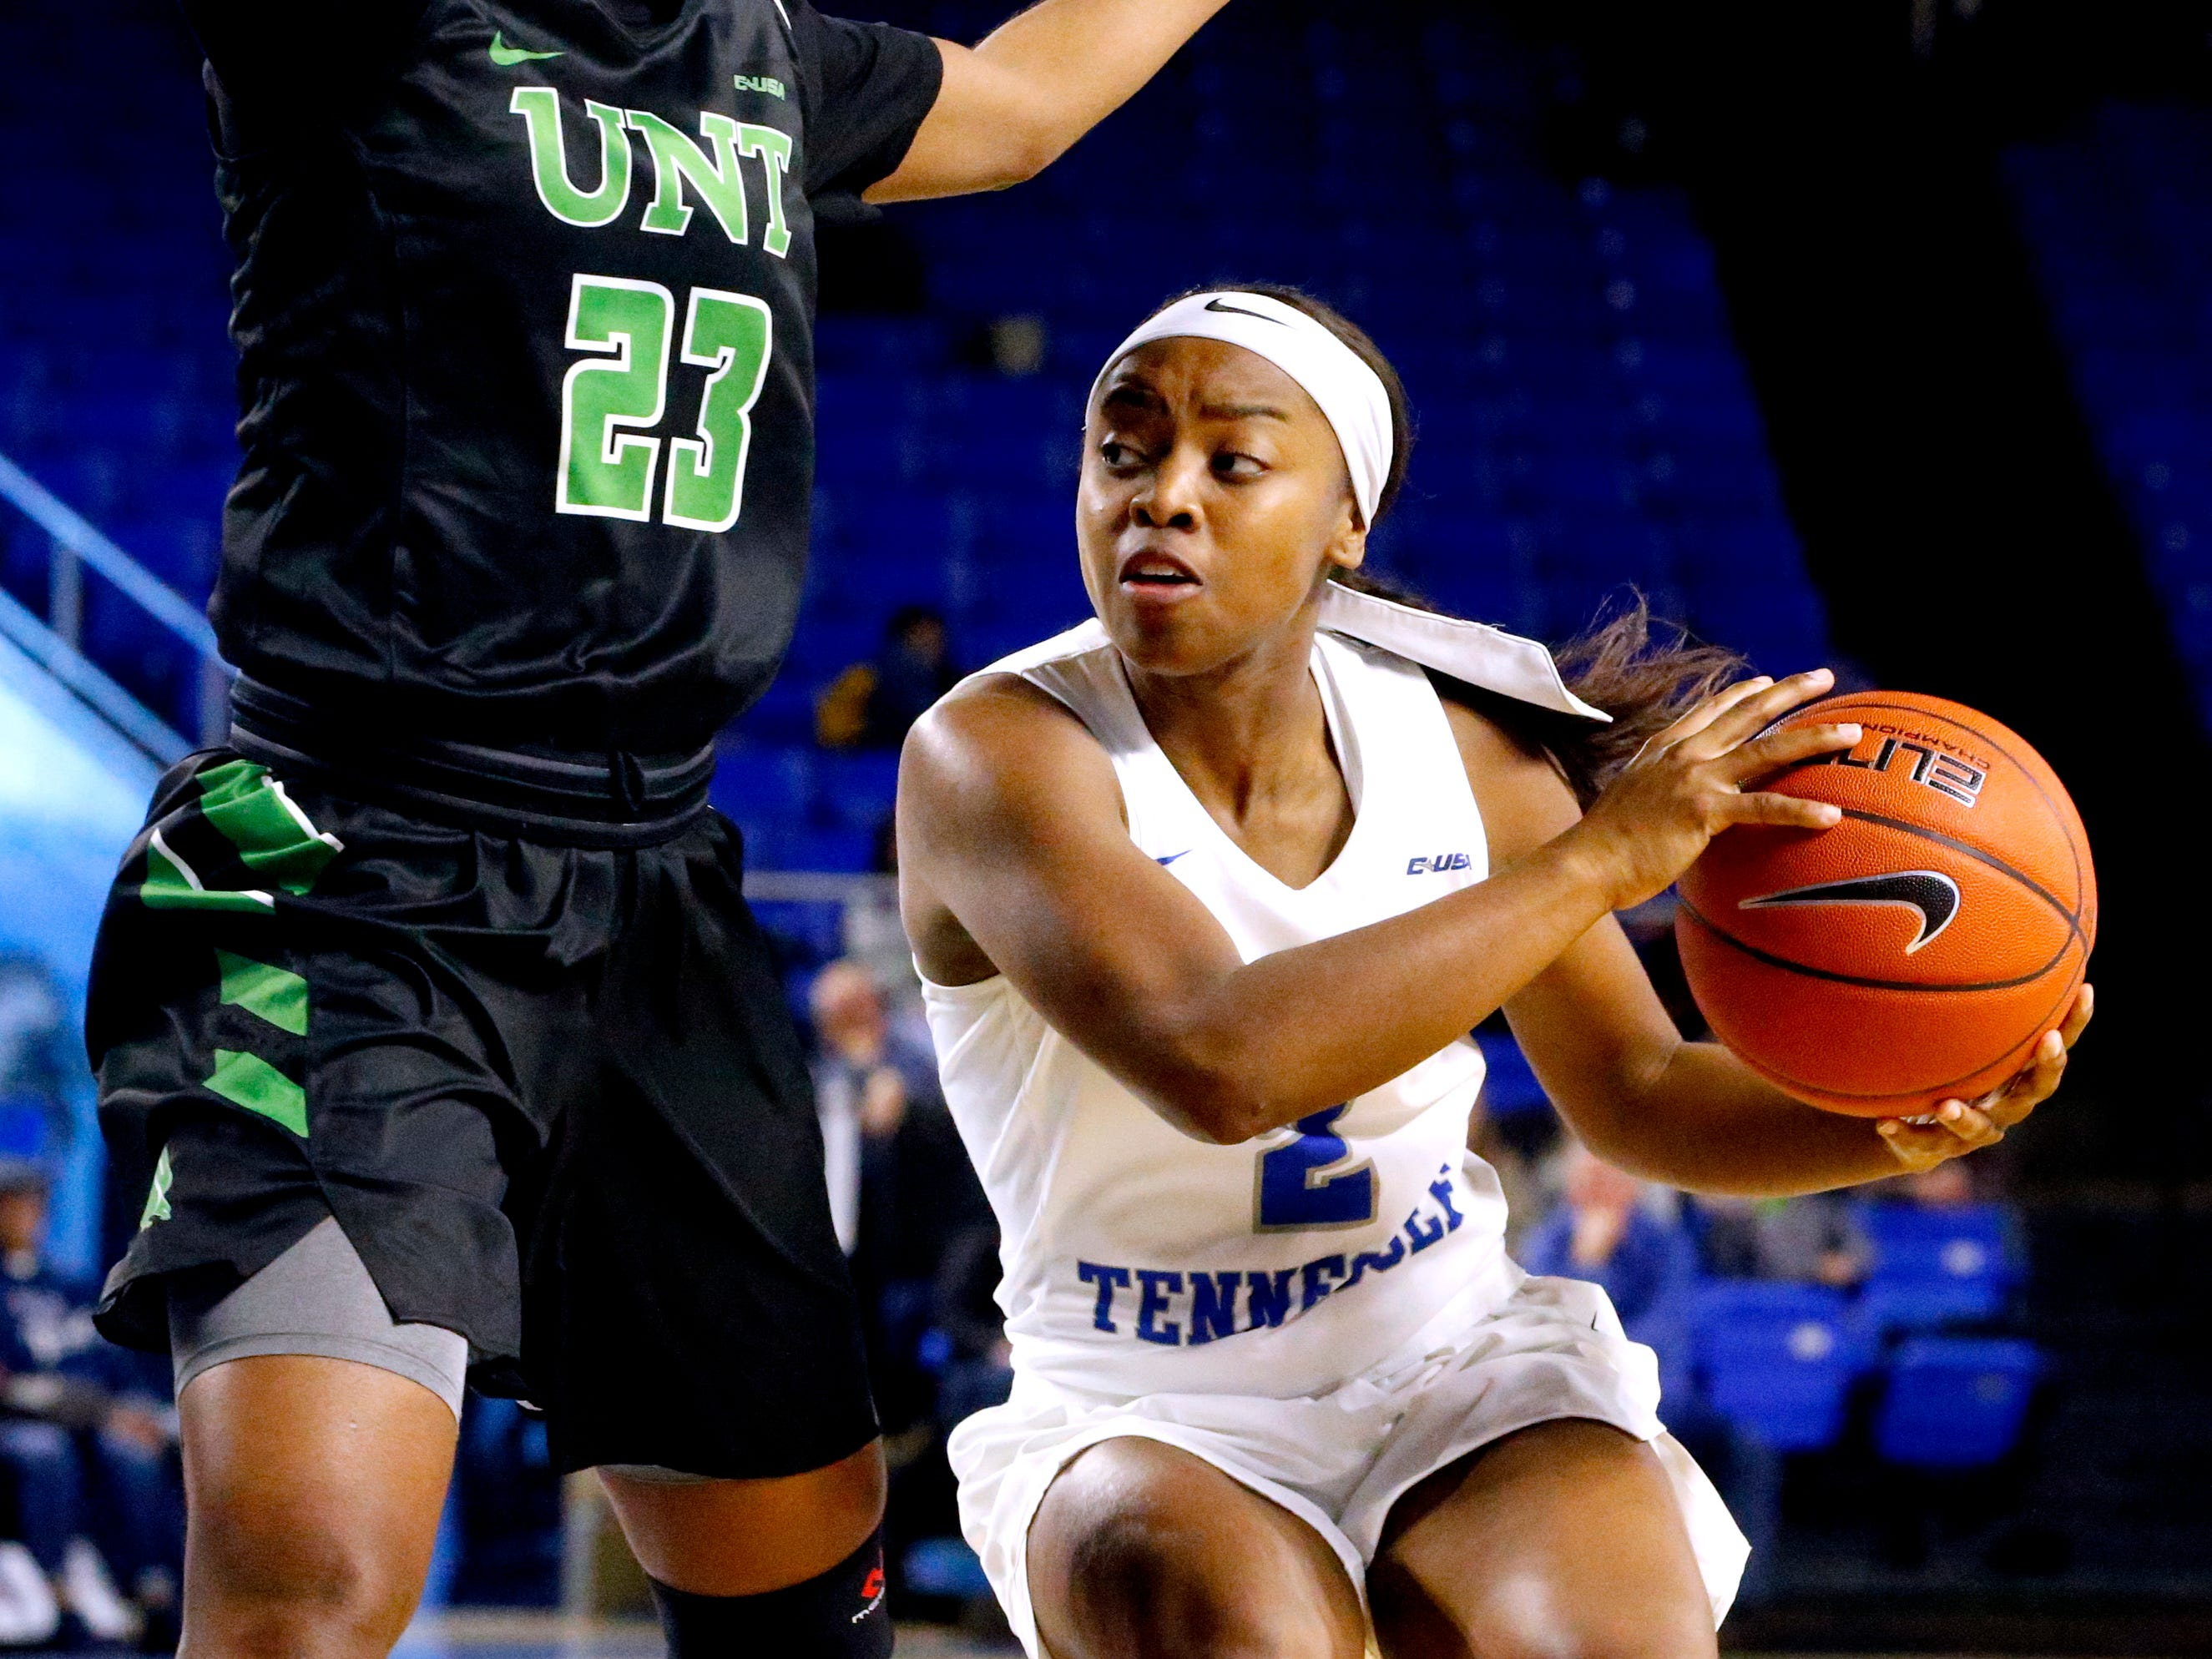 MTSU's guard Taylor Sutton (2) moves around North Texas' guard Terriell Bradley (23) during the game on Saturday Jan. 26, 2019.